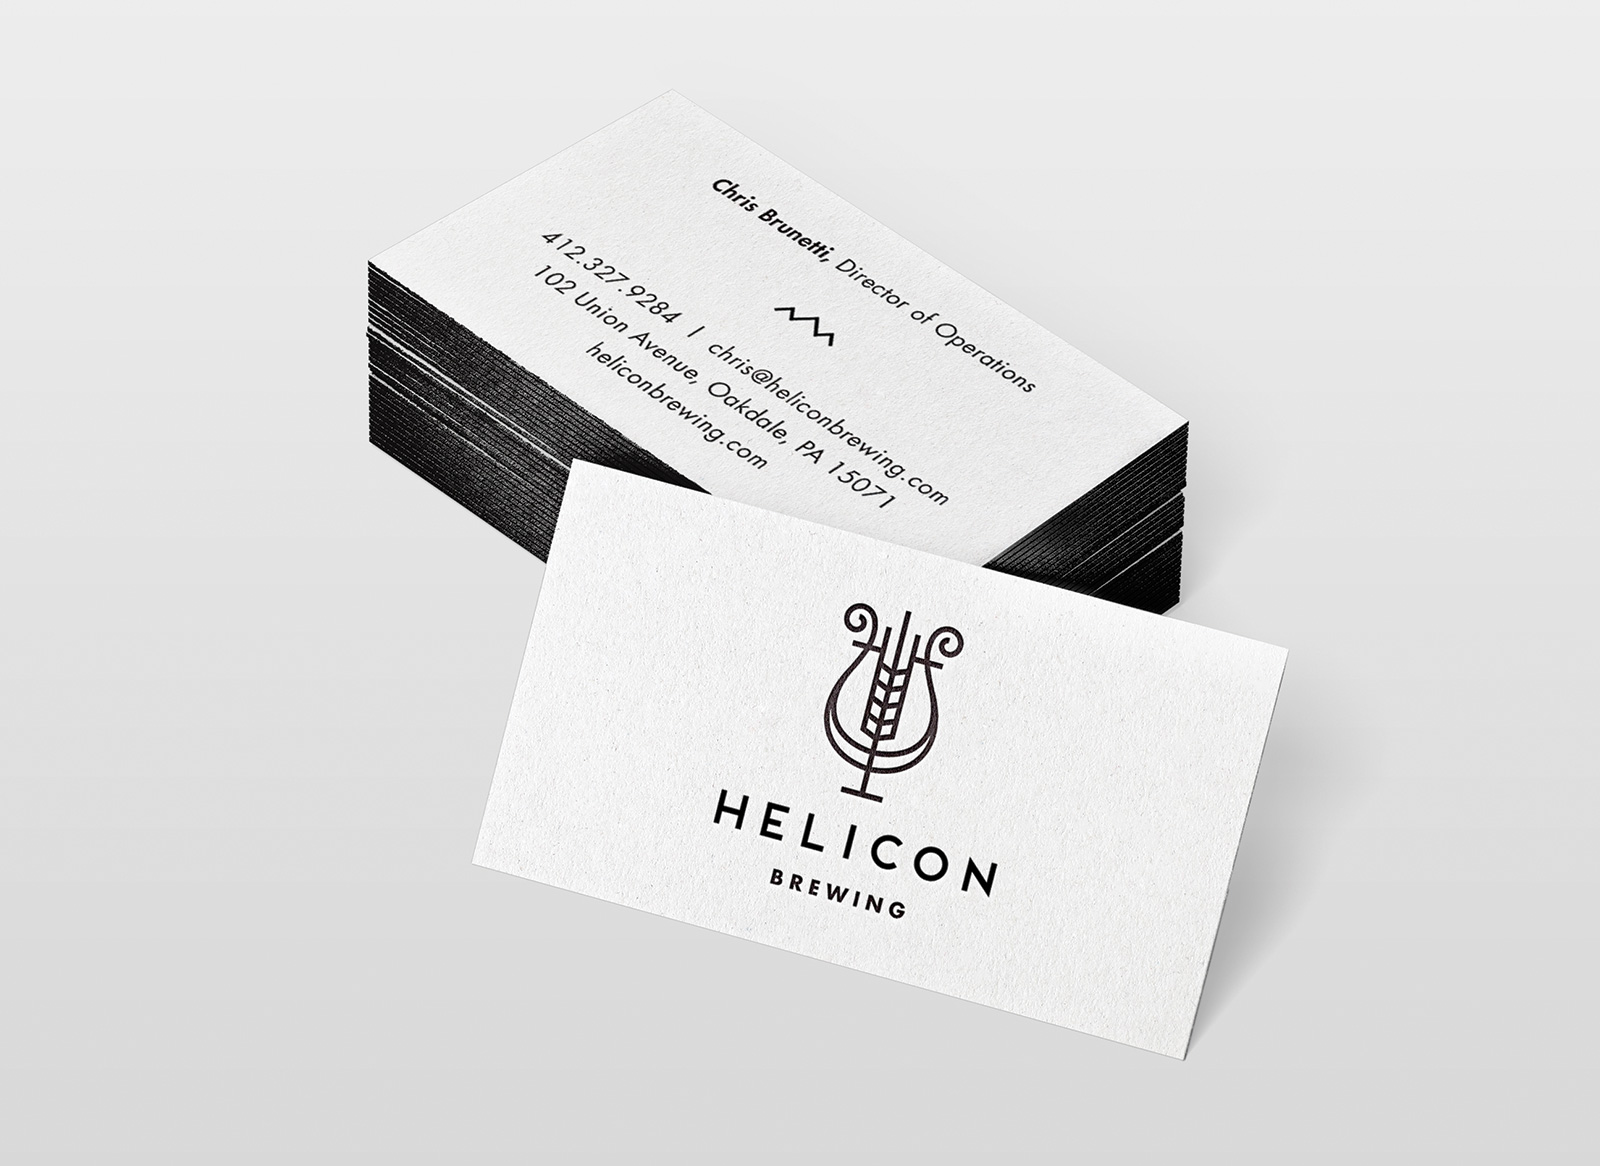 4.heliconbusinesscards